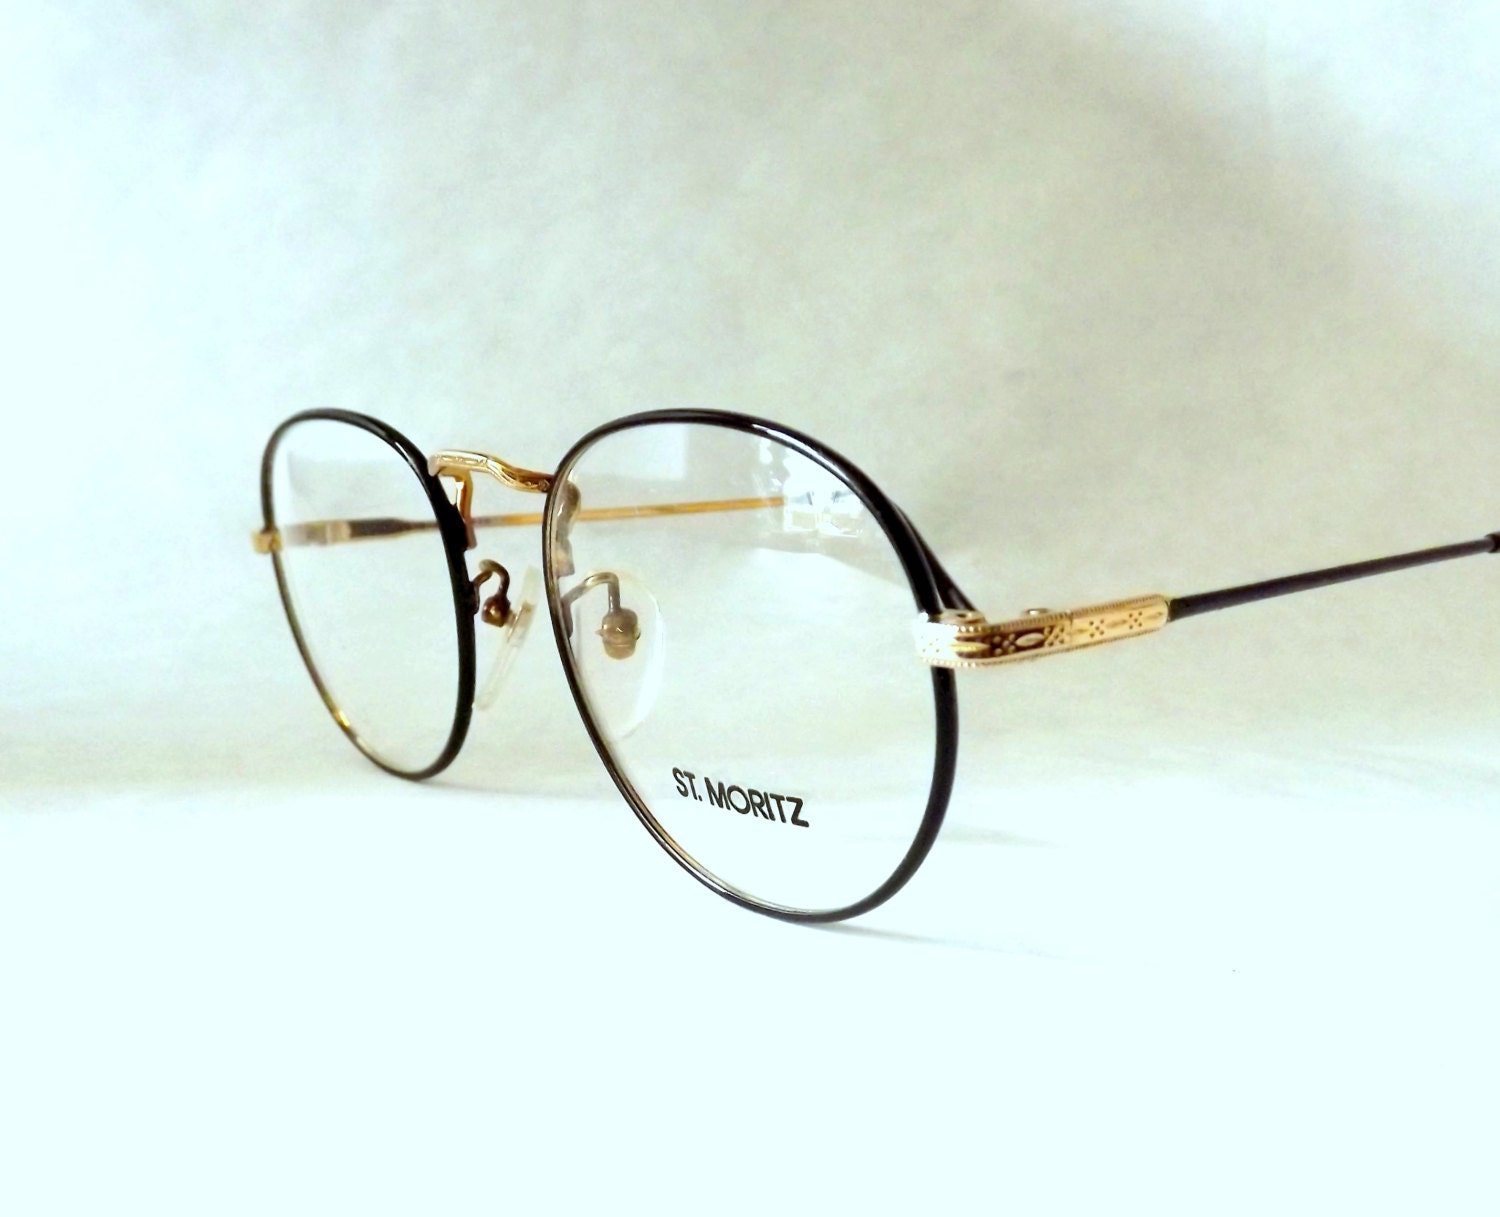 Black And Gold Eyeglass Frames : Vintage Big Black and Gold Round Wire Eyeglasses by ...